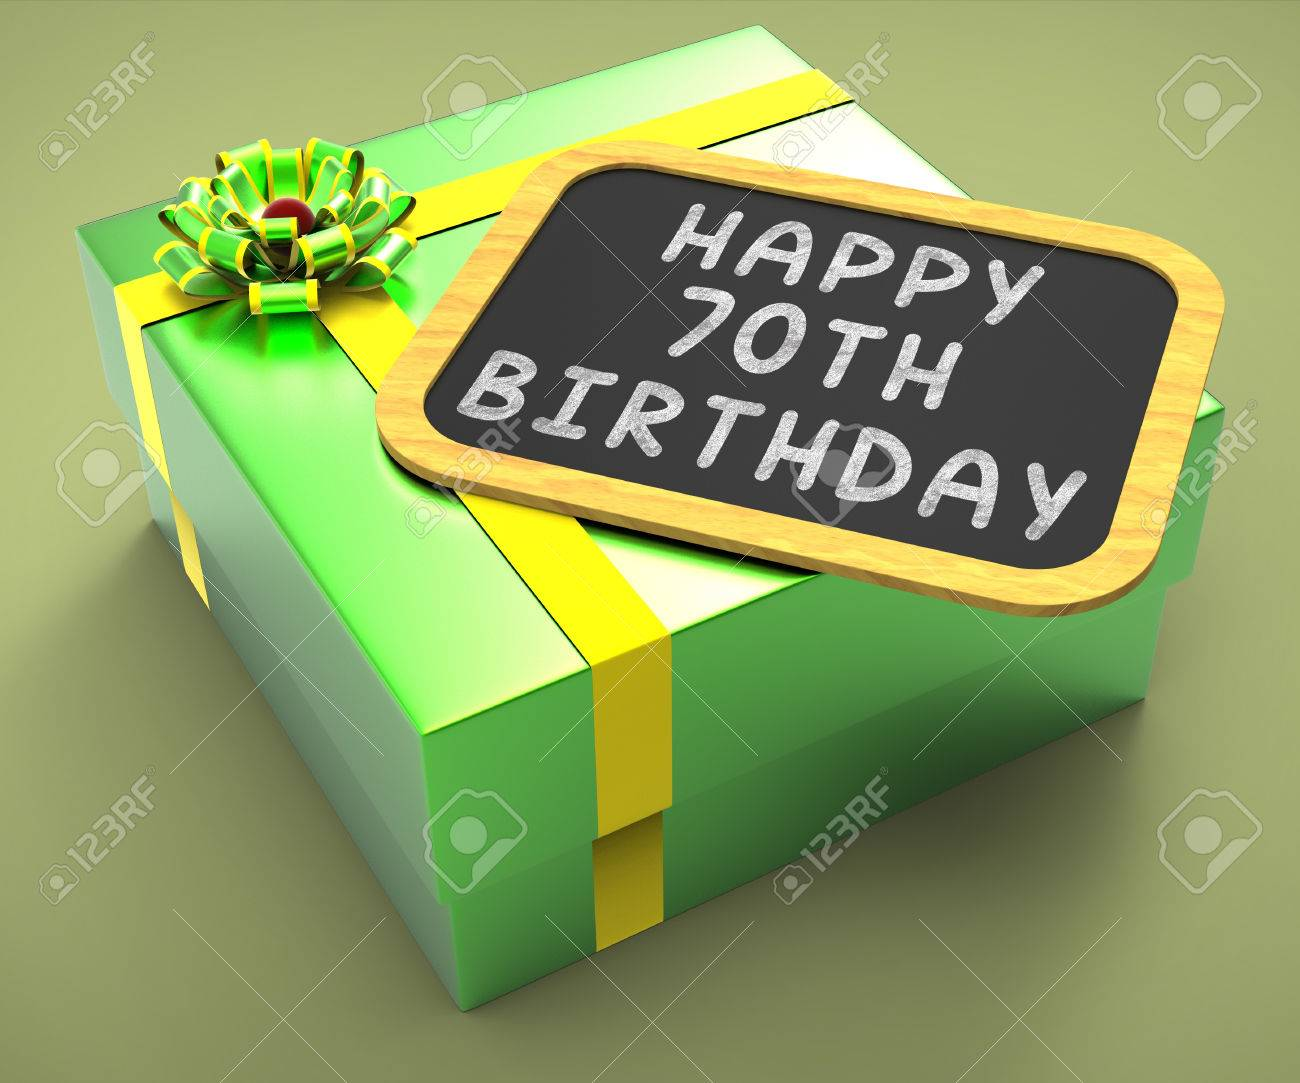 Happy Seventieth Birthday Present Meaning Grandfather Or Anniversary Stock Photo